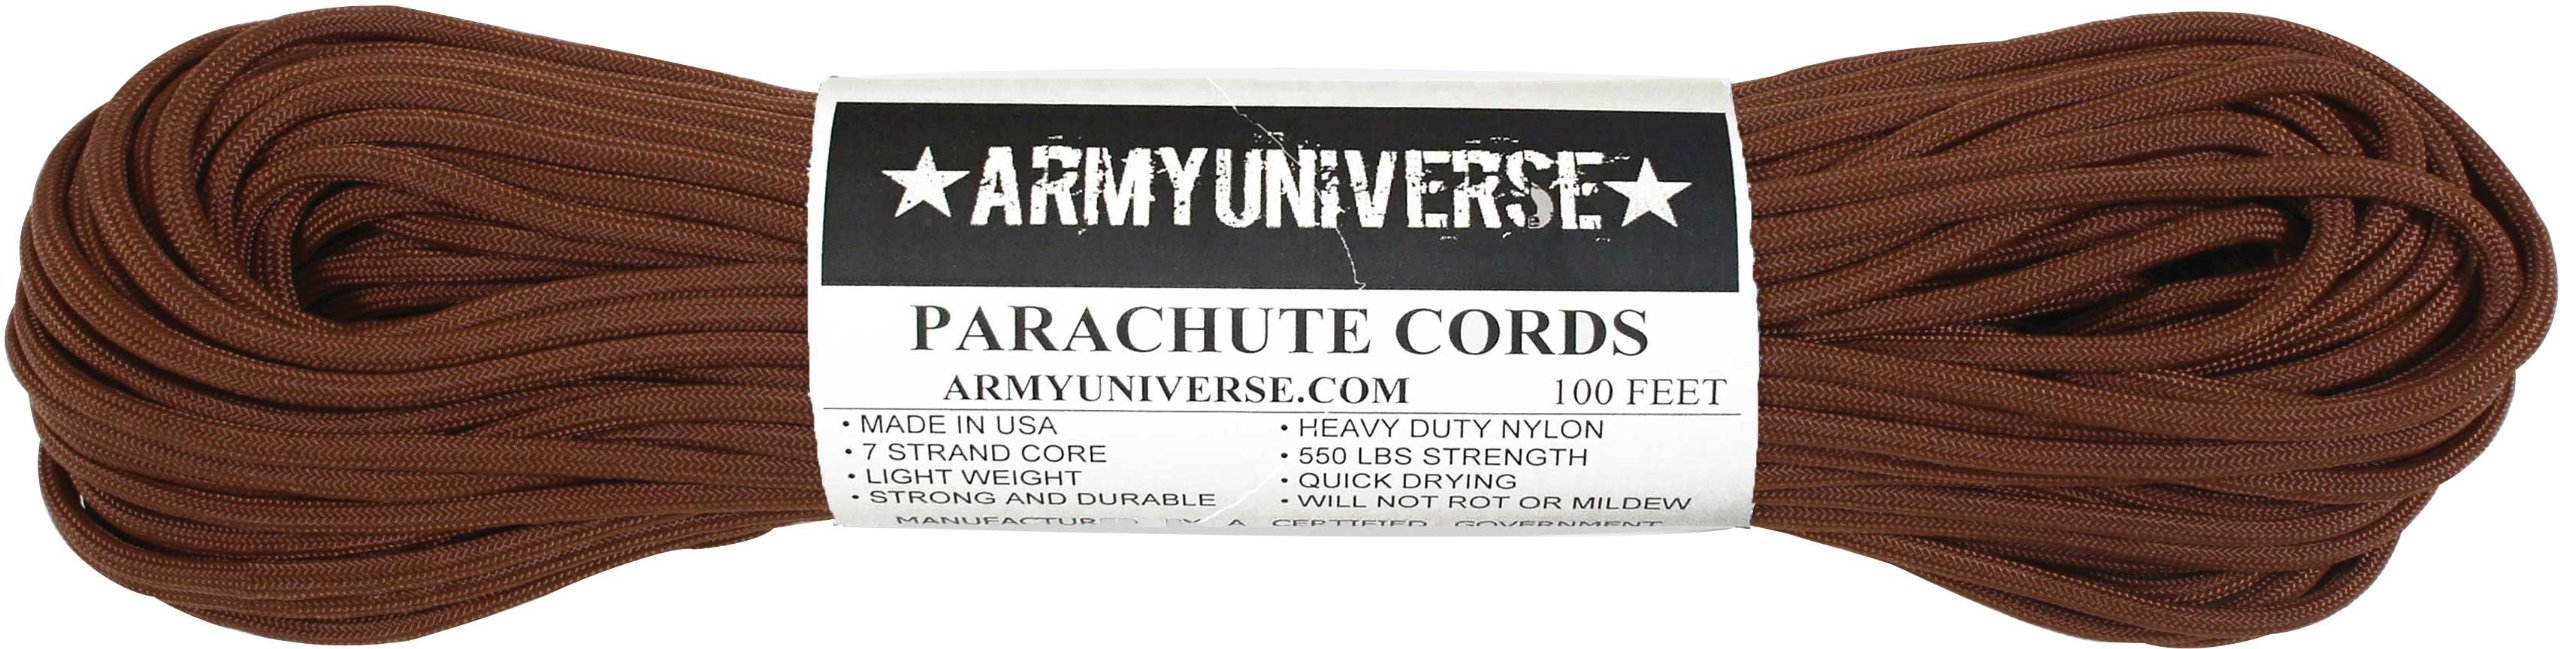 Army Universe Chocolate Brown 550LB Military Nylon Paracord Rope 100 Feet